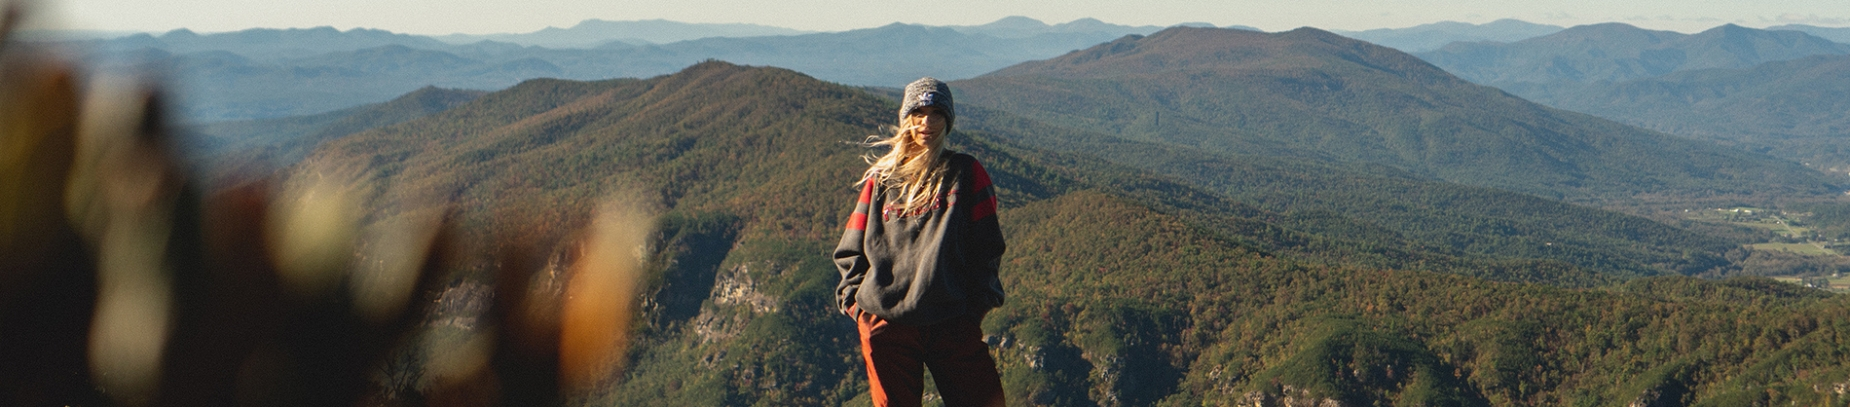 A women stood on top of a mountain with her hair blowing in the wind